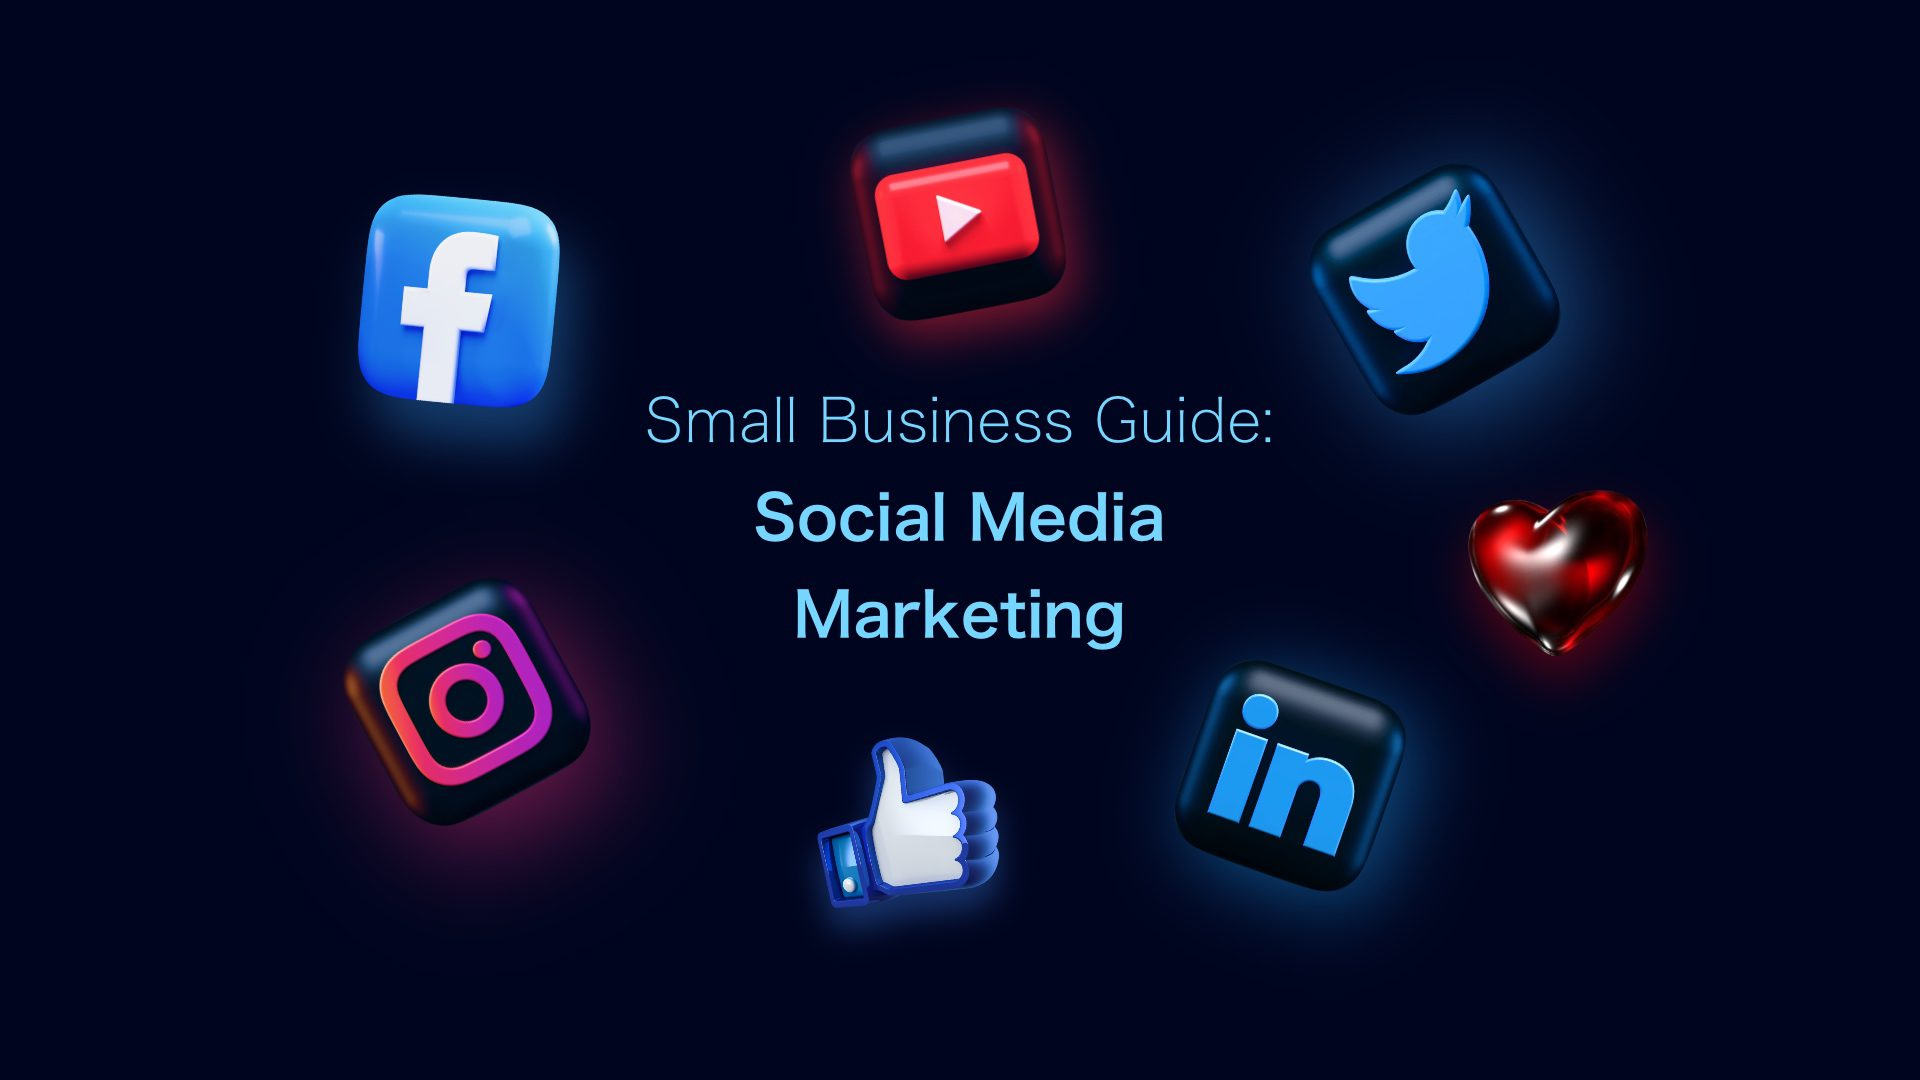 Small Business How-To Guide on Social Media Marketing